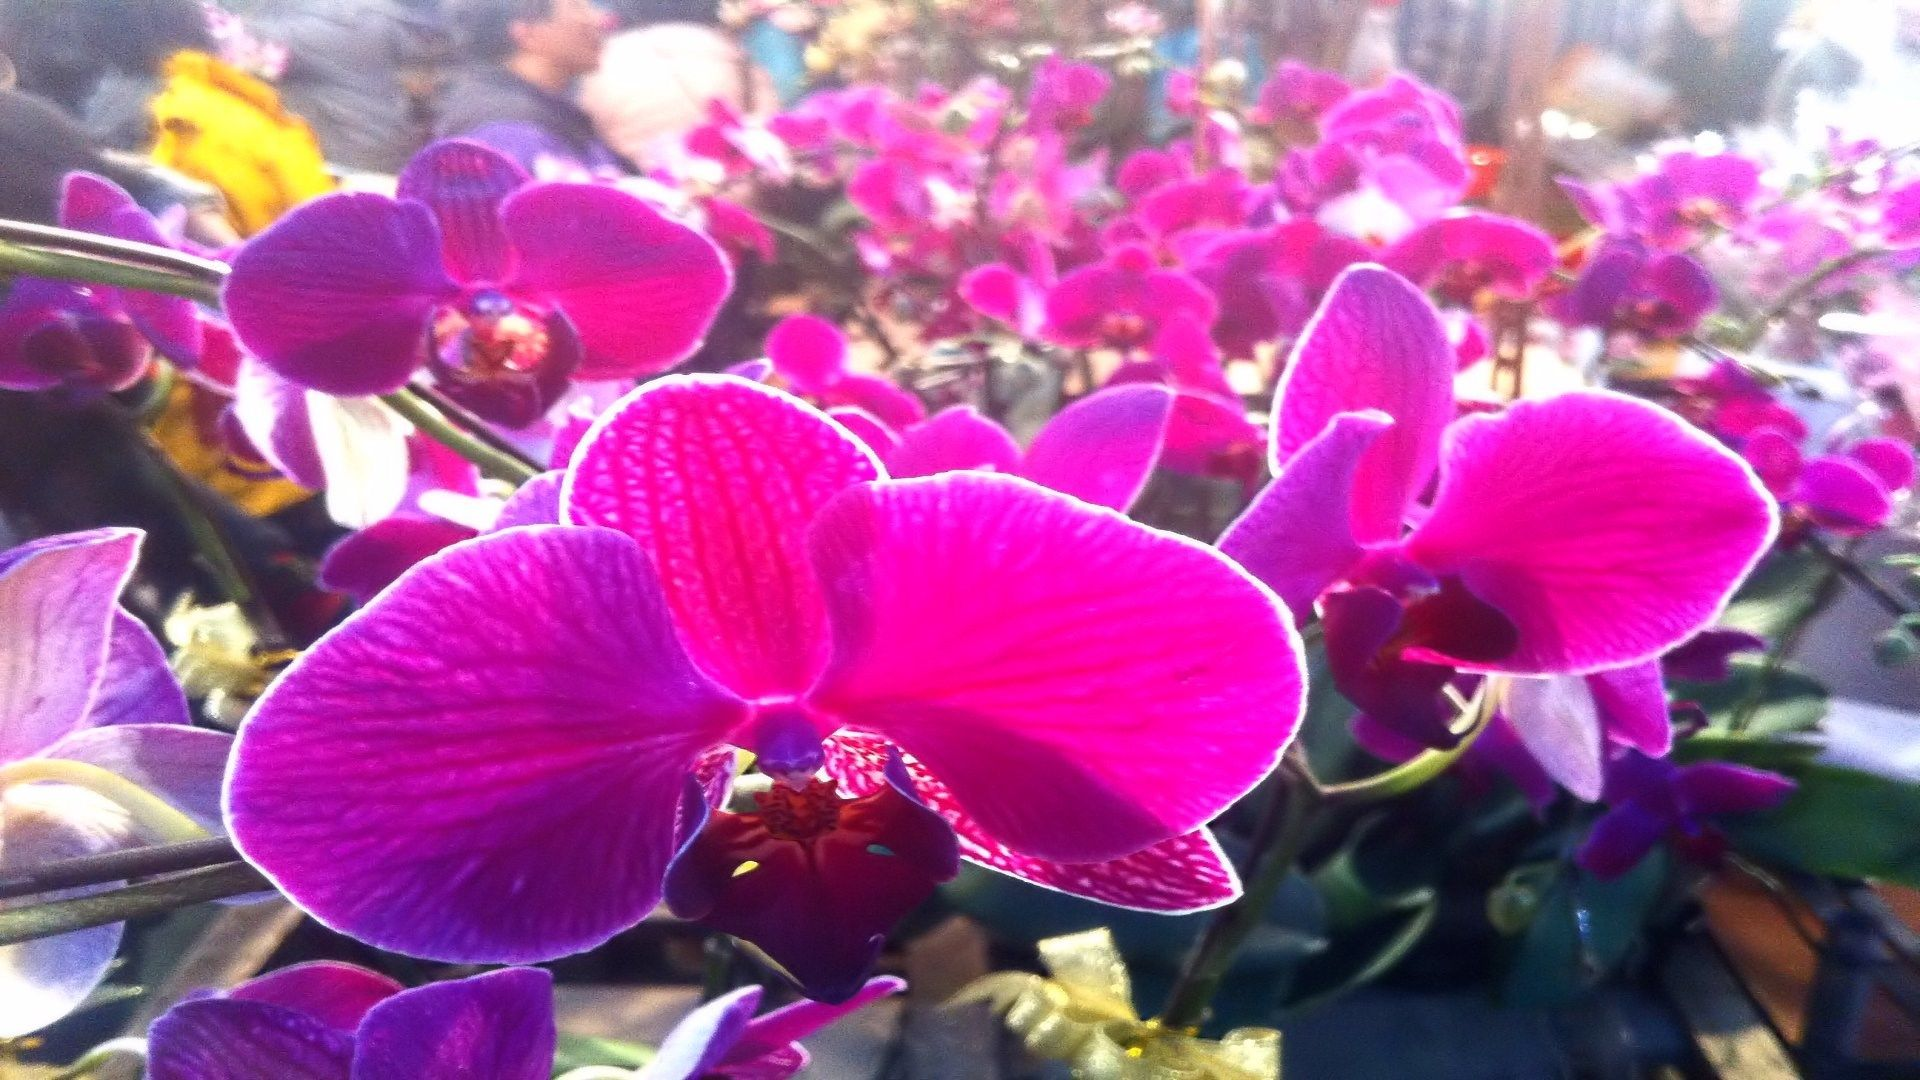 Kallen smith orchid pictures to download x px